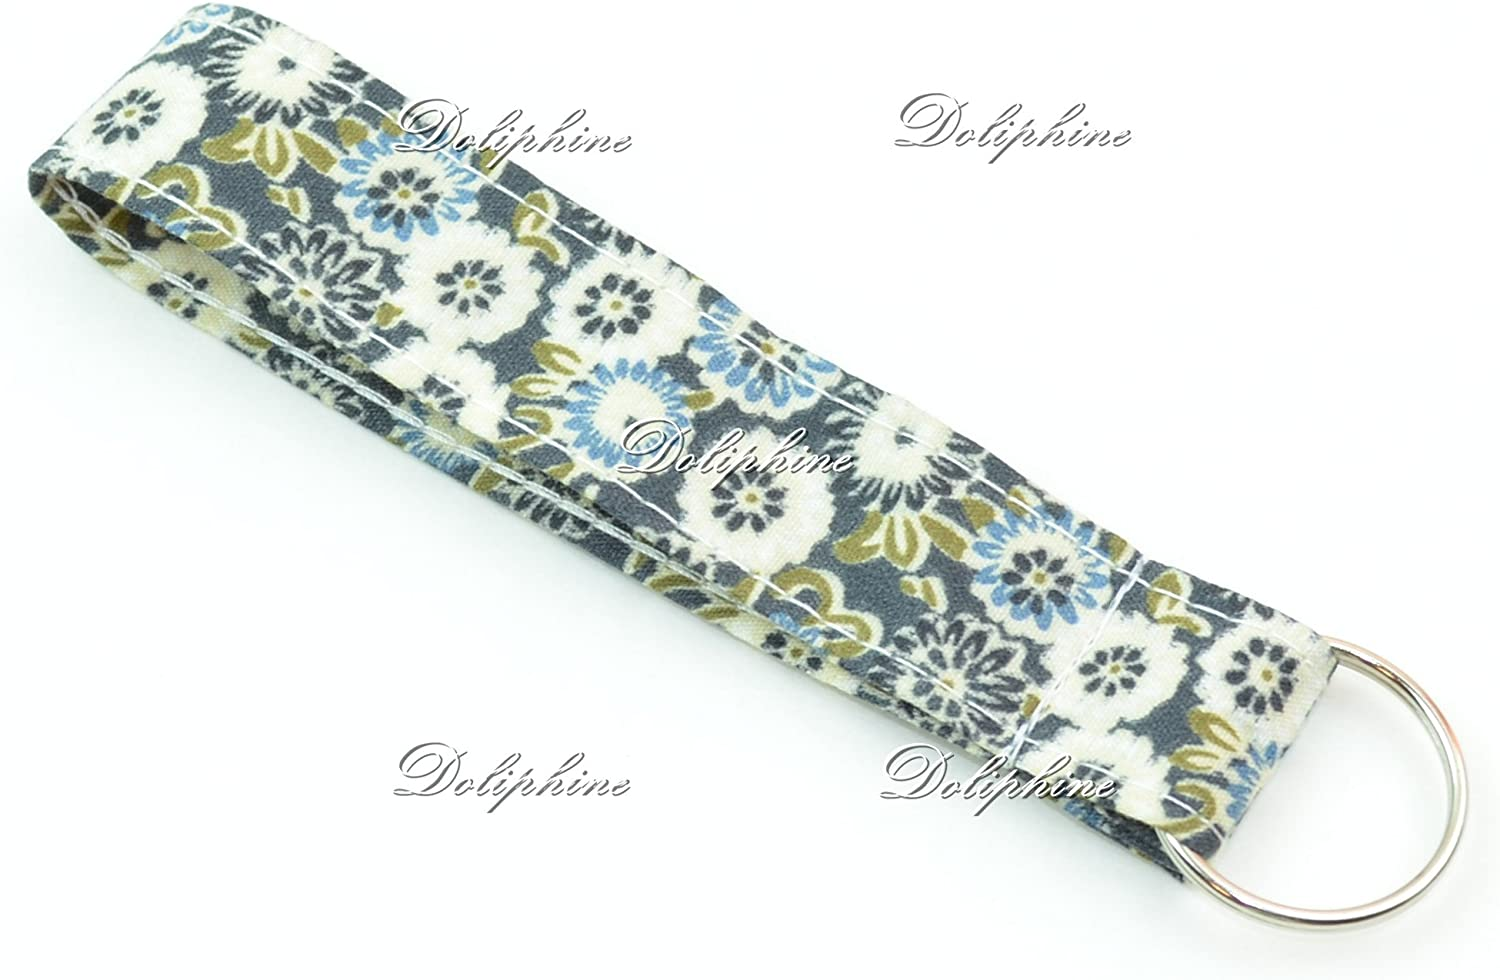 Floral Print Save money Wristlet Fabric Lanyard Key Chain ID B for fob Fixed price for sale